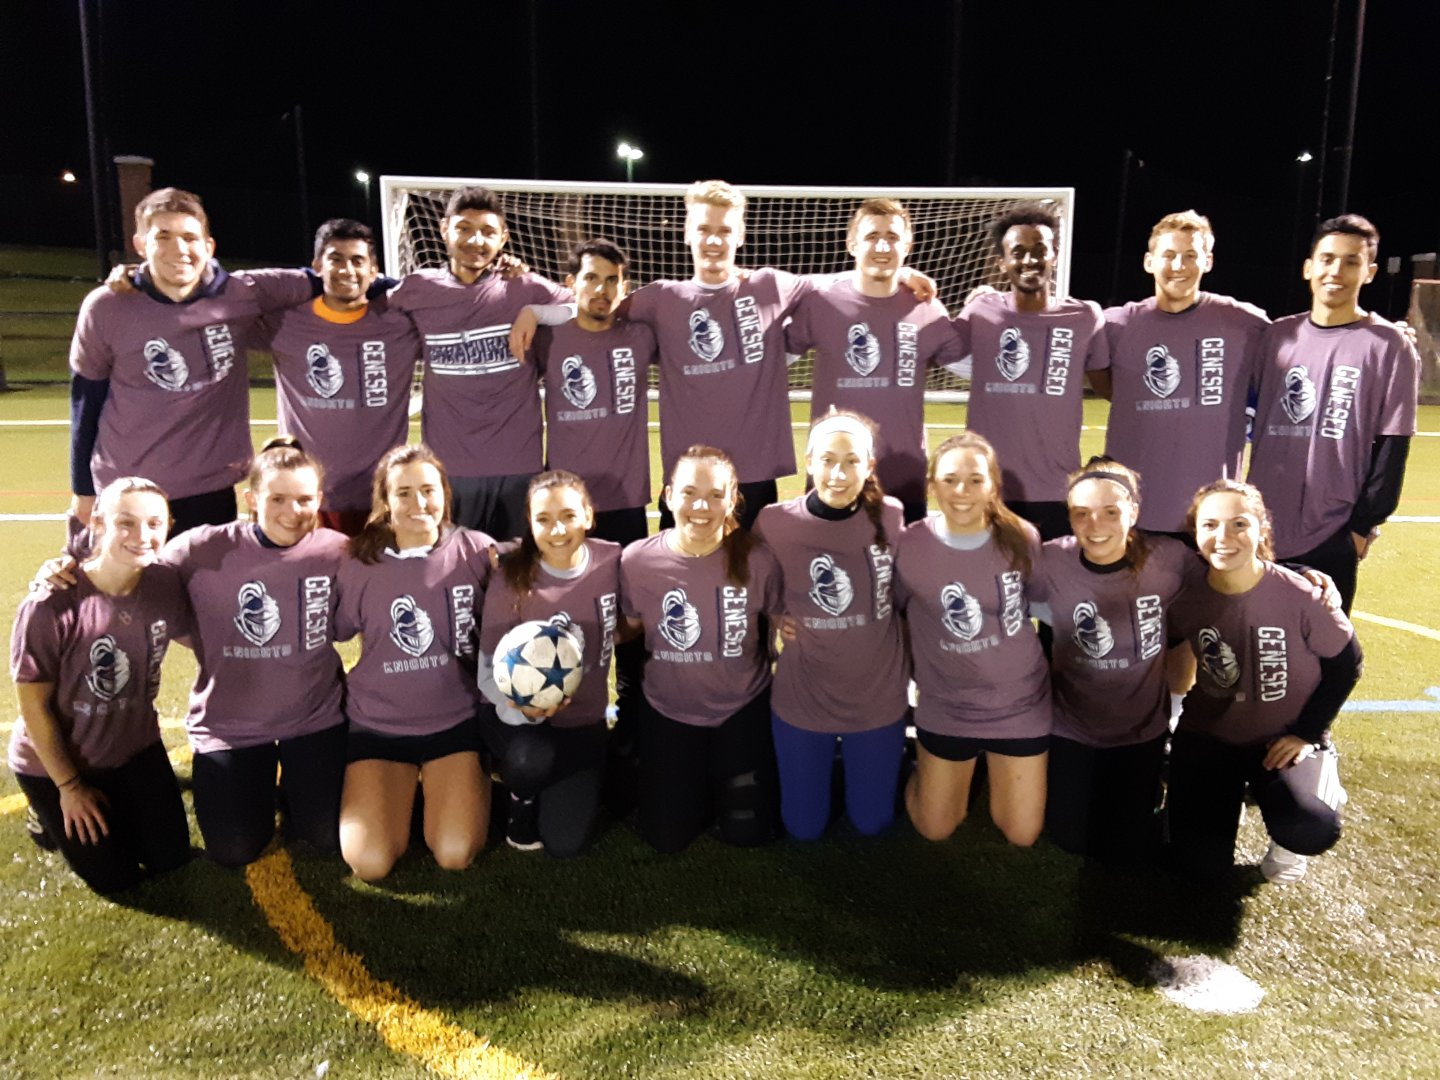 Championship Pictures 2019 Suny Geneseo